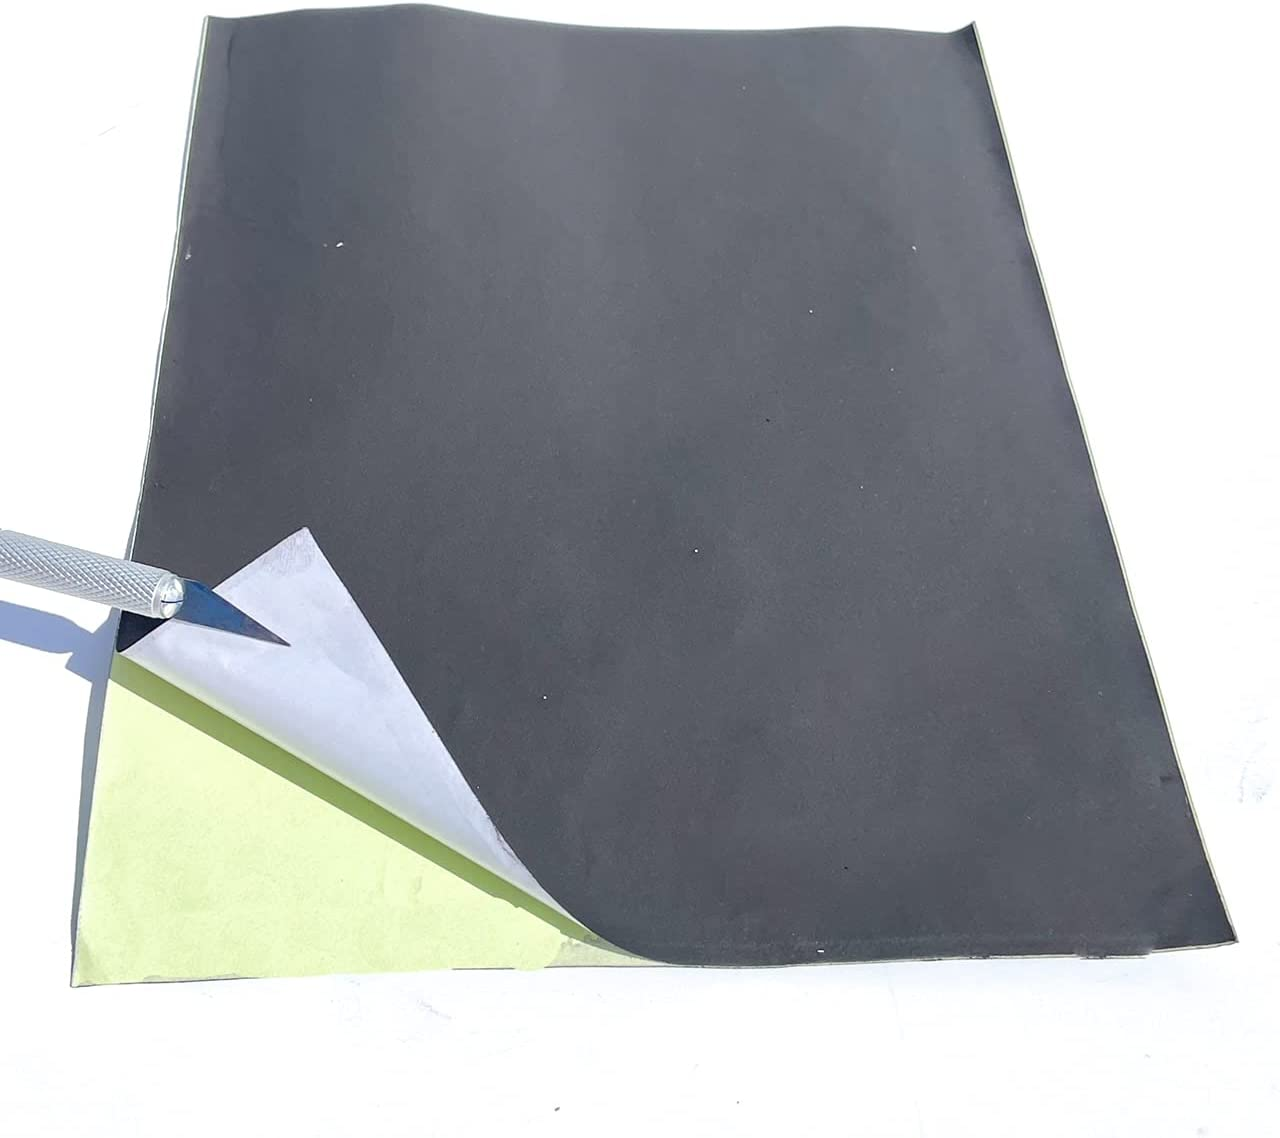 5 Full Sheets Factory outlet of Many popular brands Adhesive Striker 8.5